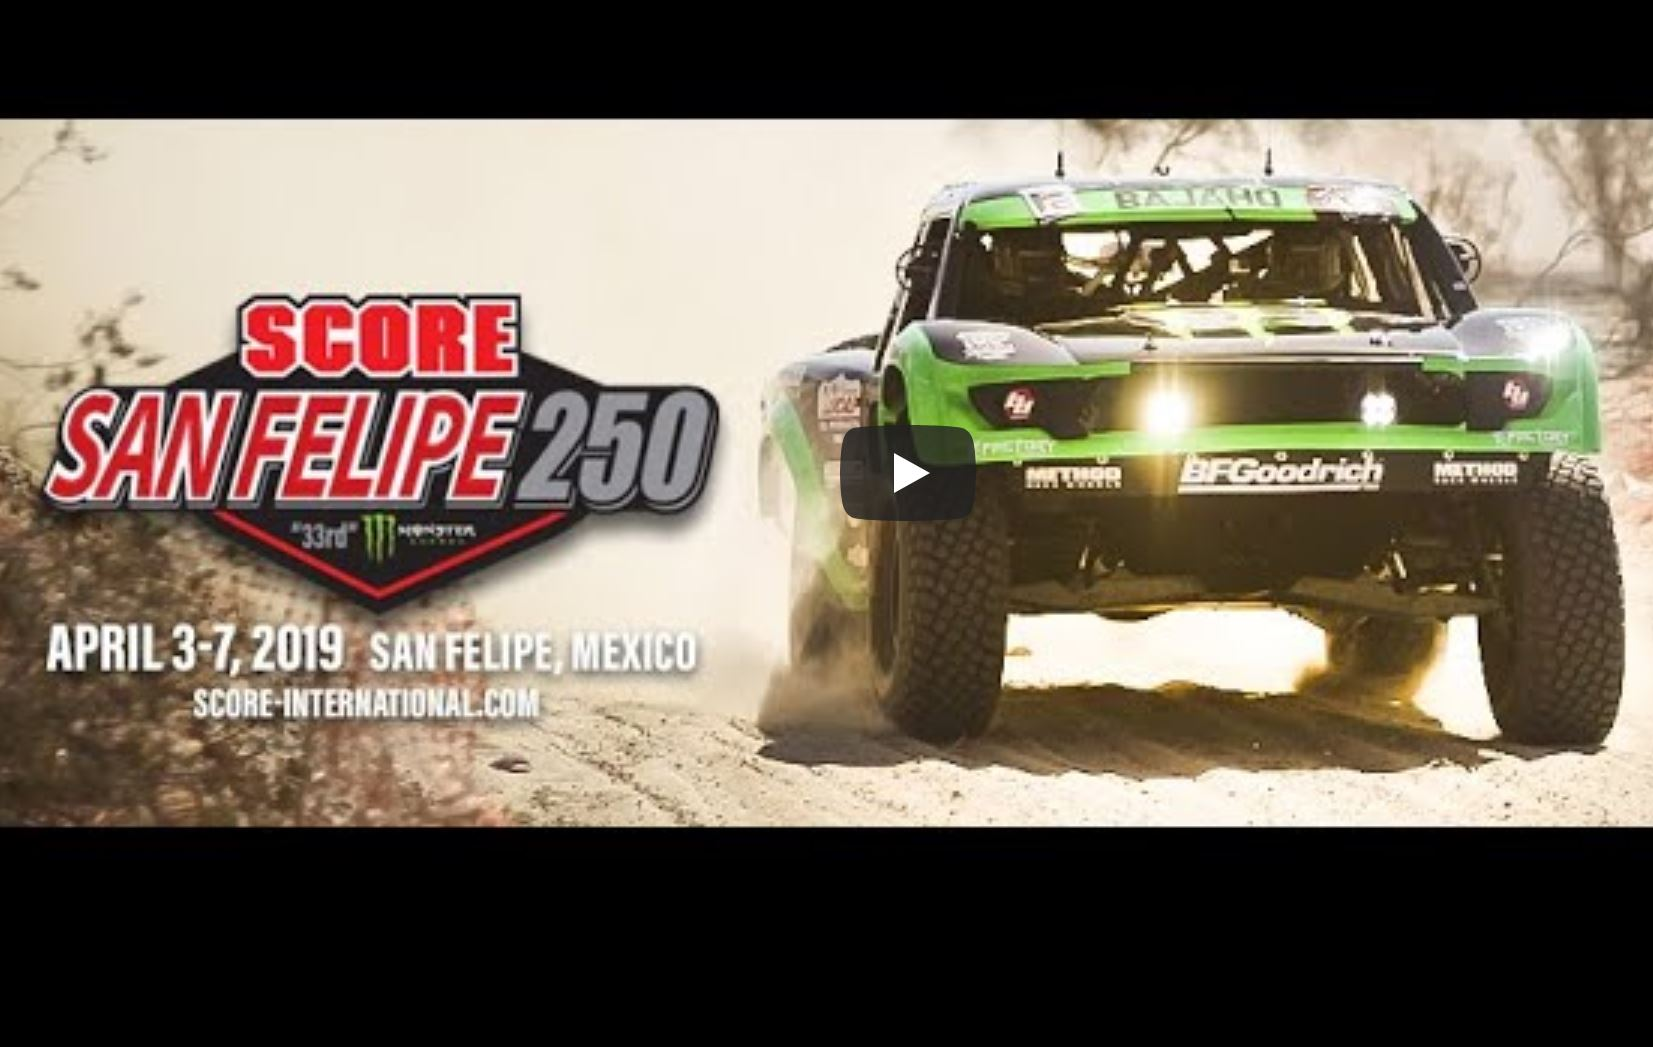 The SCORE International San Felipe 250 Is LIVE Right Now! Off-Road Racing At It's Finest!